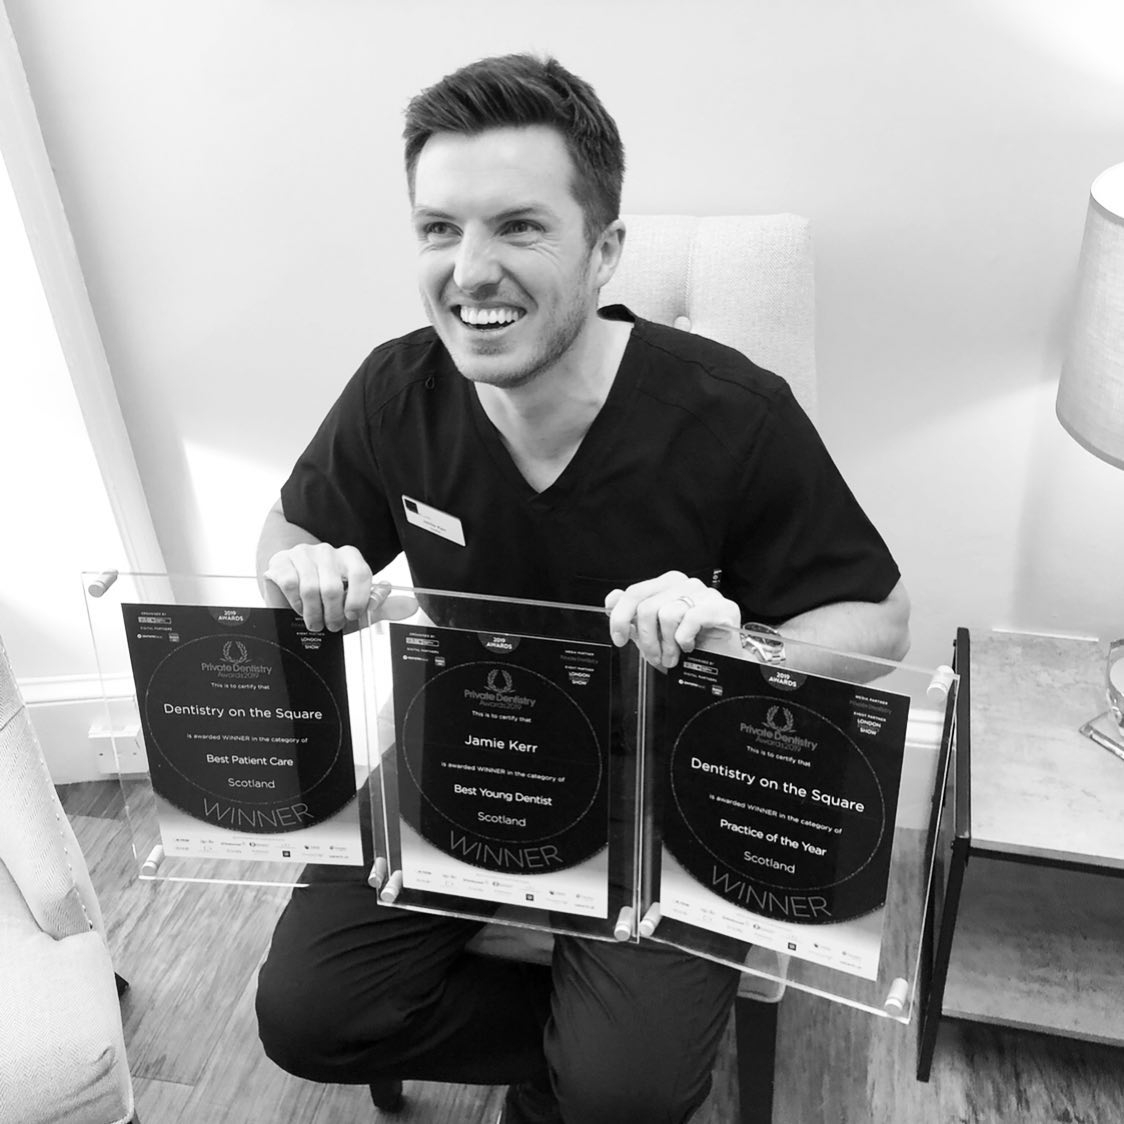 """Dental Awards!   """"At Dentistry on the Square we pride ourselves in delivering 5-star customer service and world class  𝙋𝘼𝙄𝙉 𝙁𝙍𝙀𝙀 dental care in a relaxed, friendly environment.  #dentalimplants #painfreedentistry #smilemakeover #digitalsmiledesign pic.twitter.com/gEHOPfn5zn"""